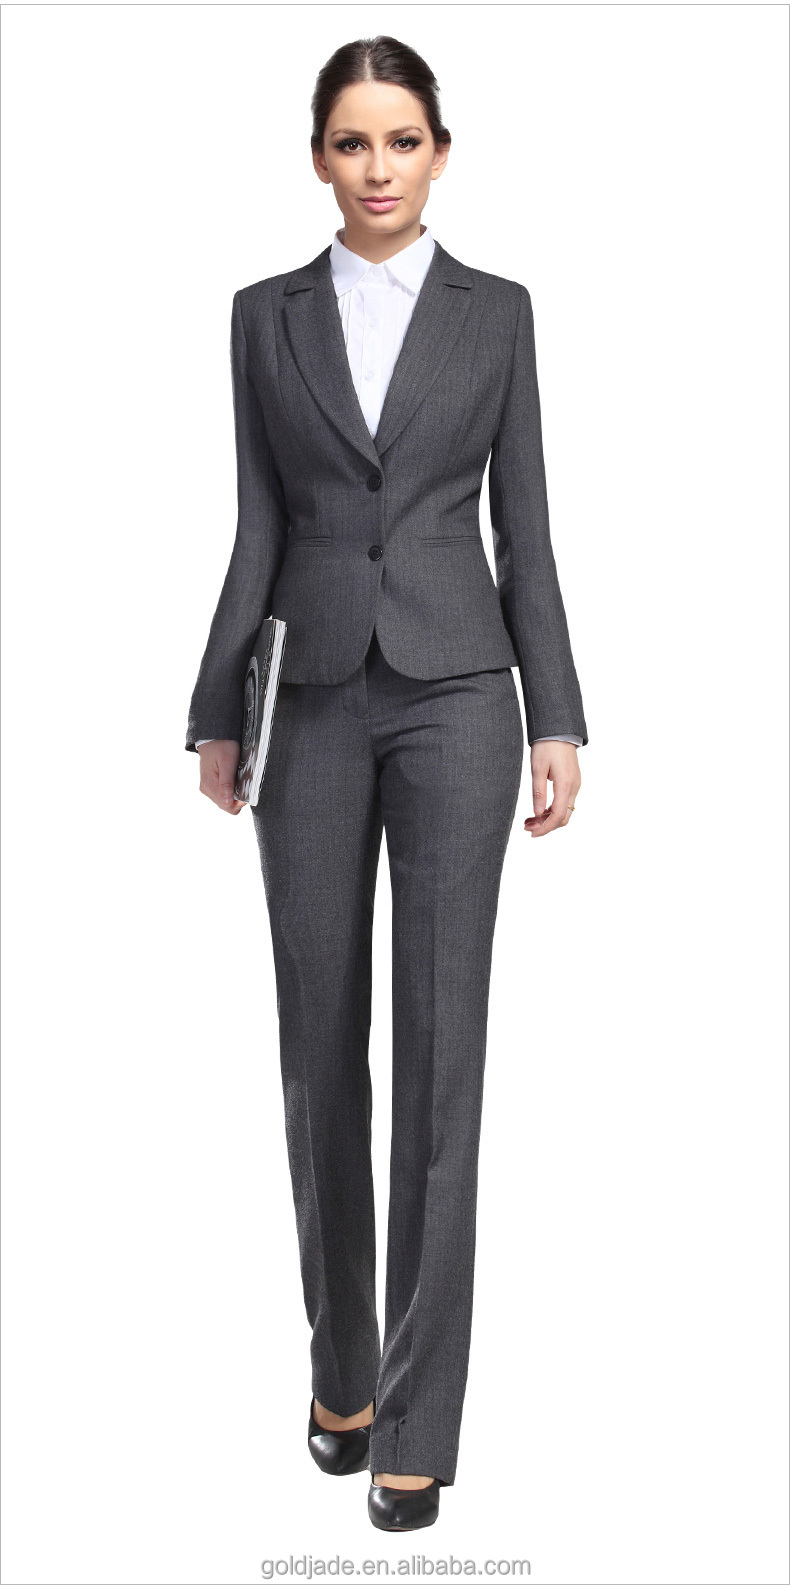 2014 latest bank office uniform designs for office view for Office design uniform